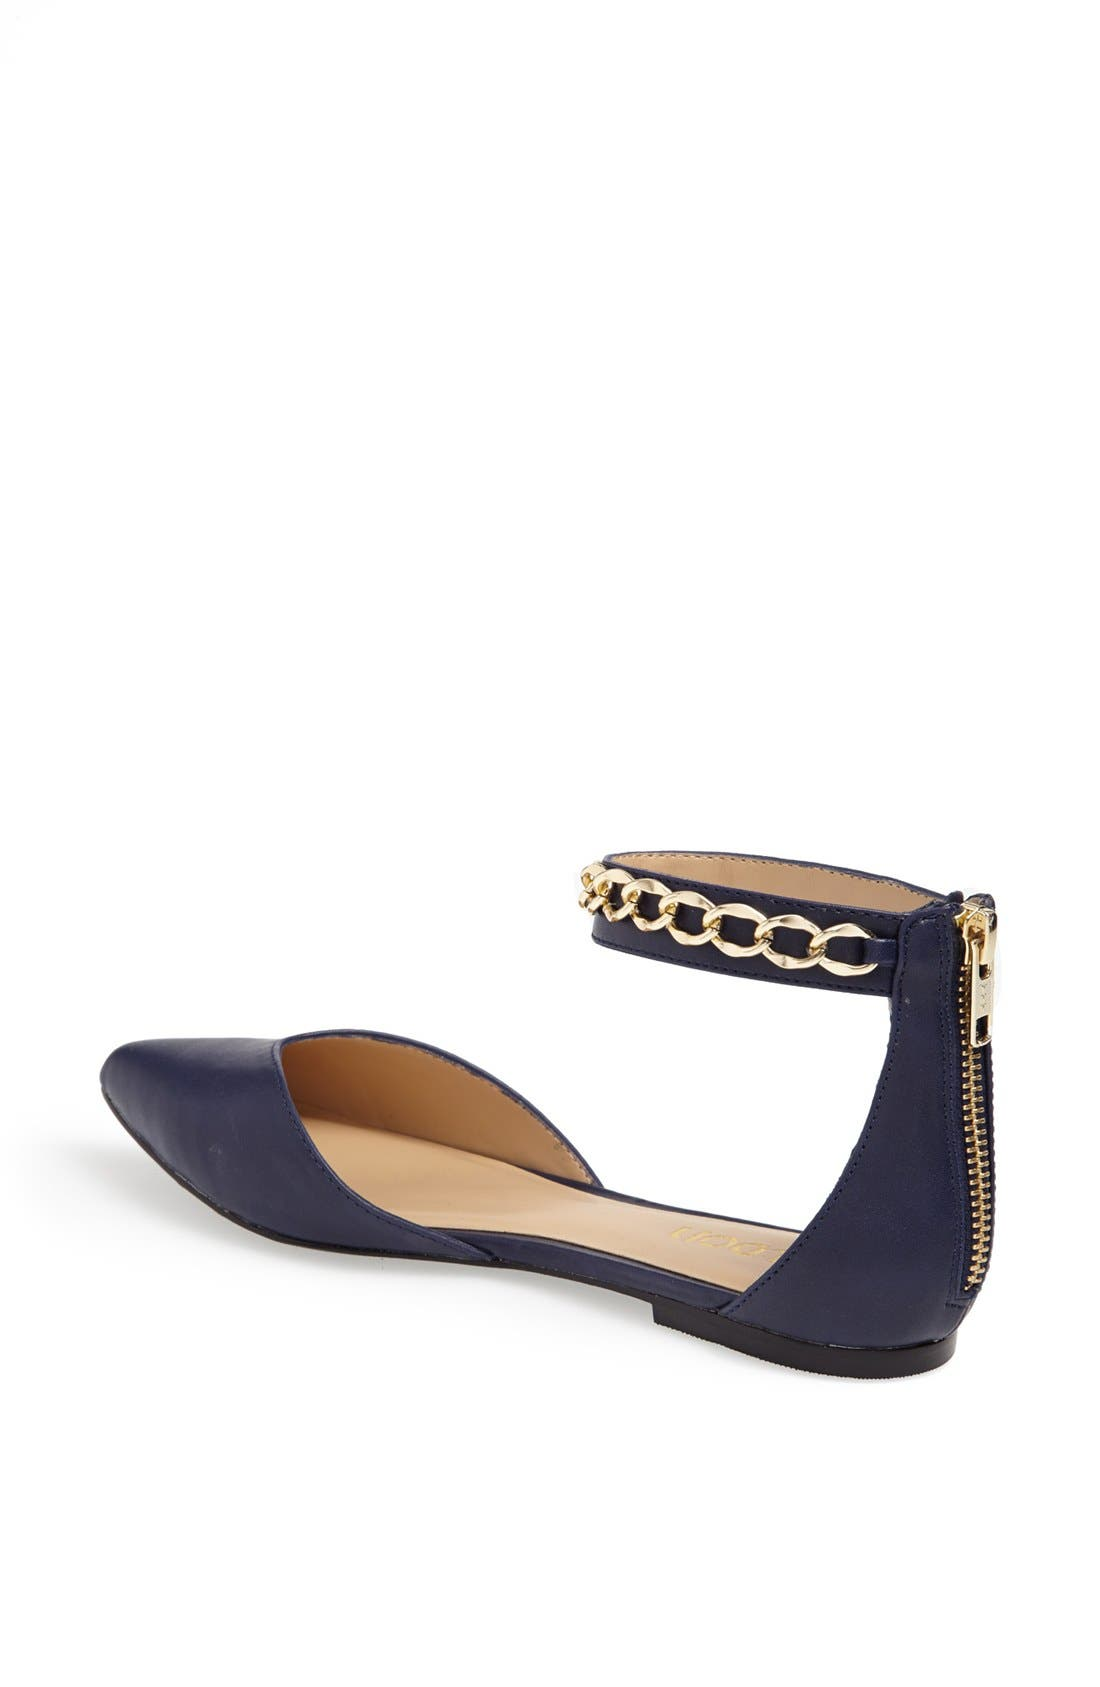 'Anya' Ankle Strap D'Orsay Flat,                             Alternate thumbnail 16, color,